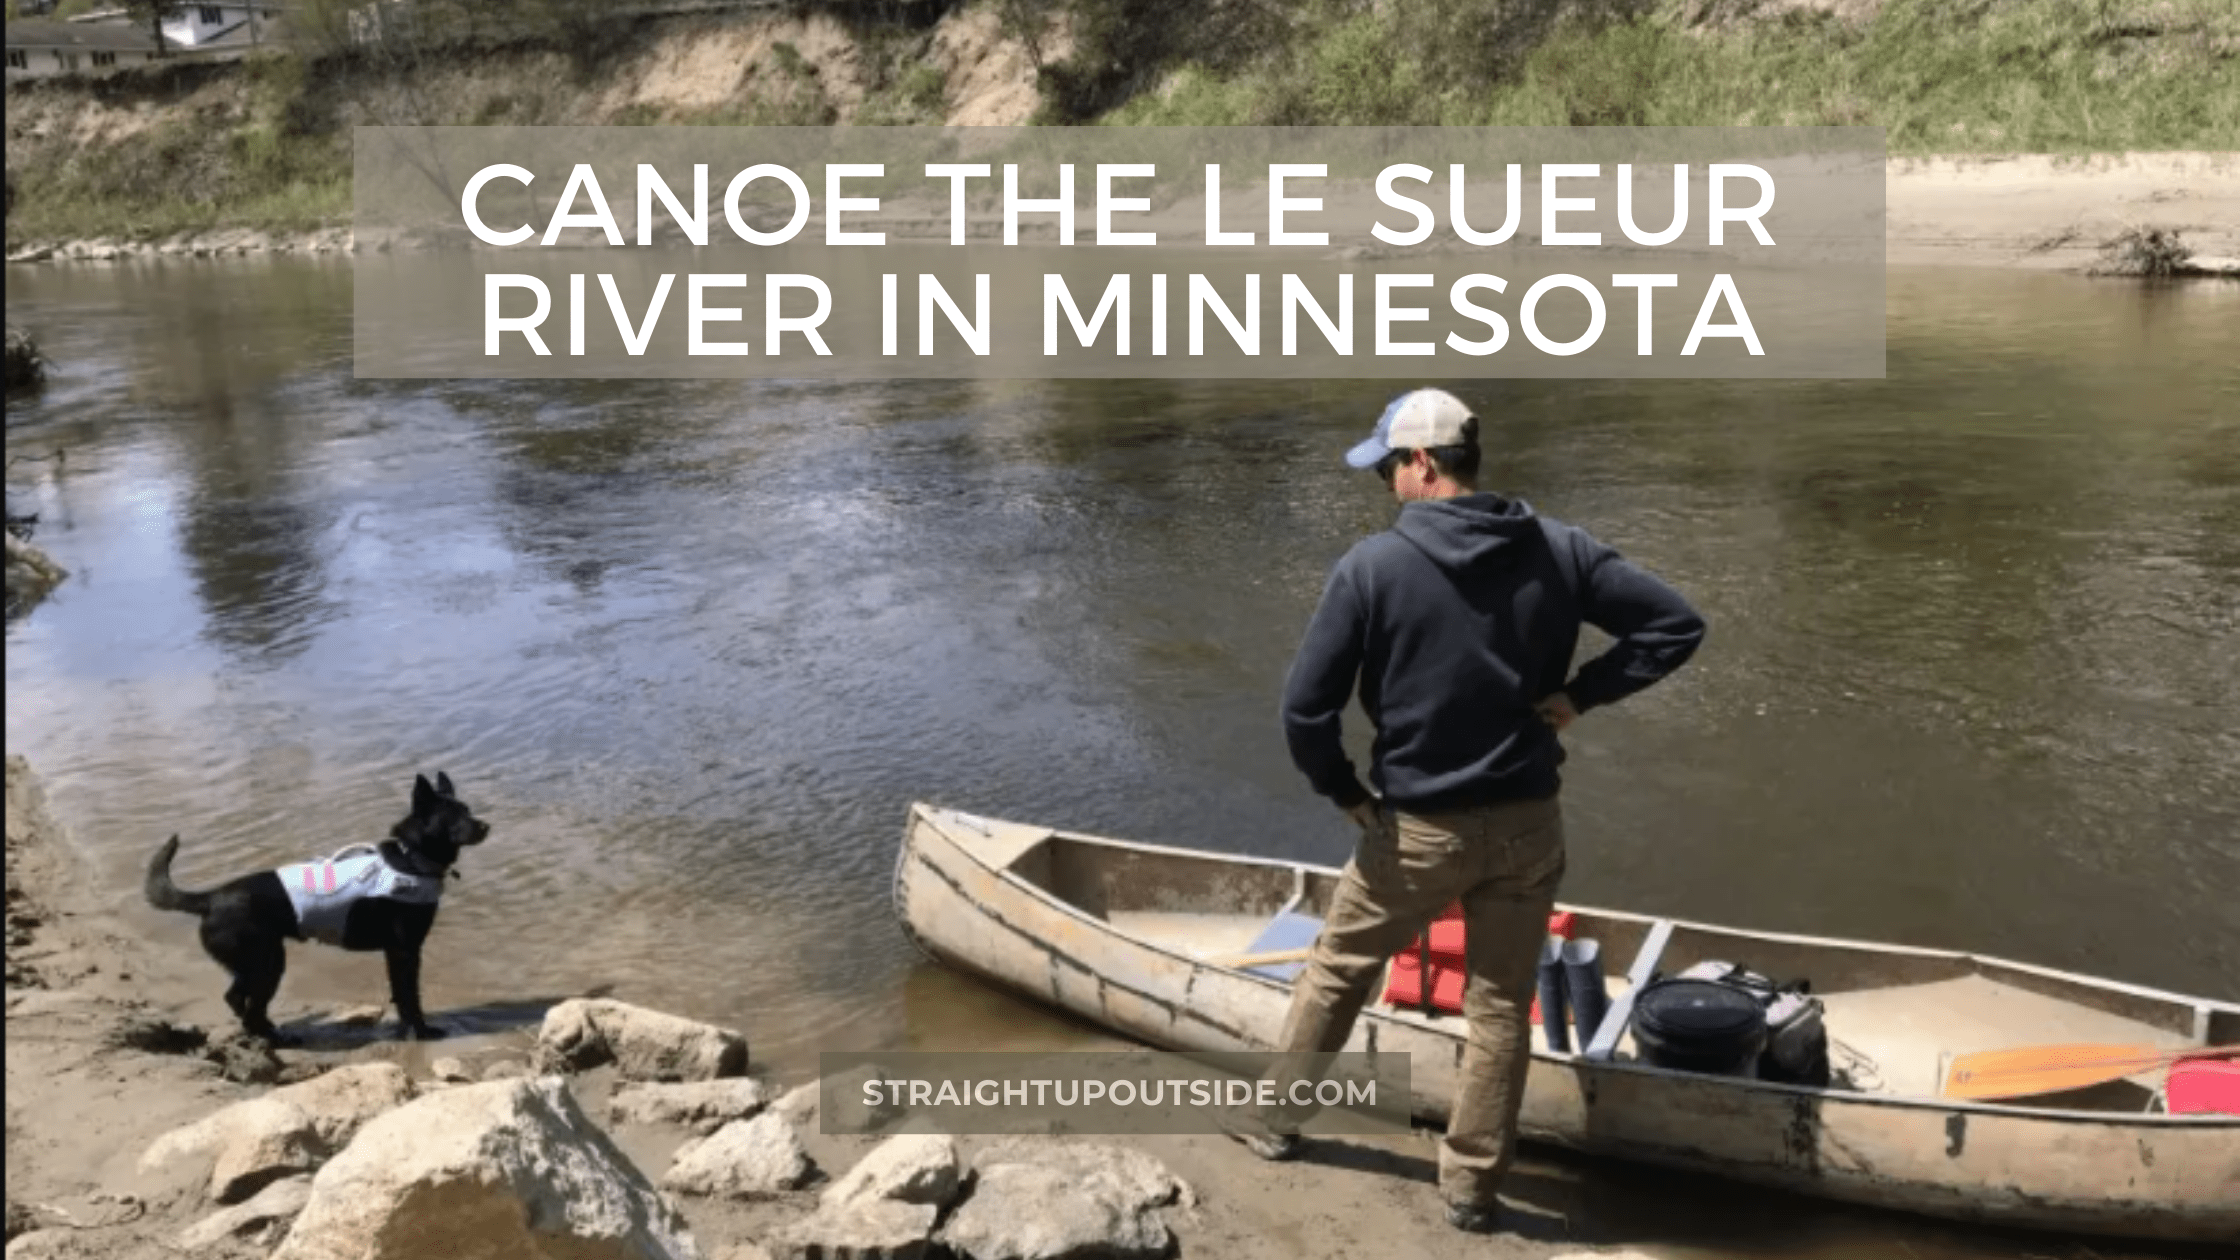 Canoe the Le Sueur River in Minnesota